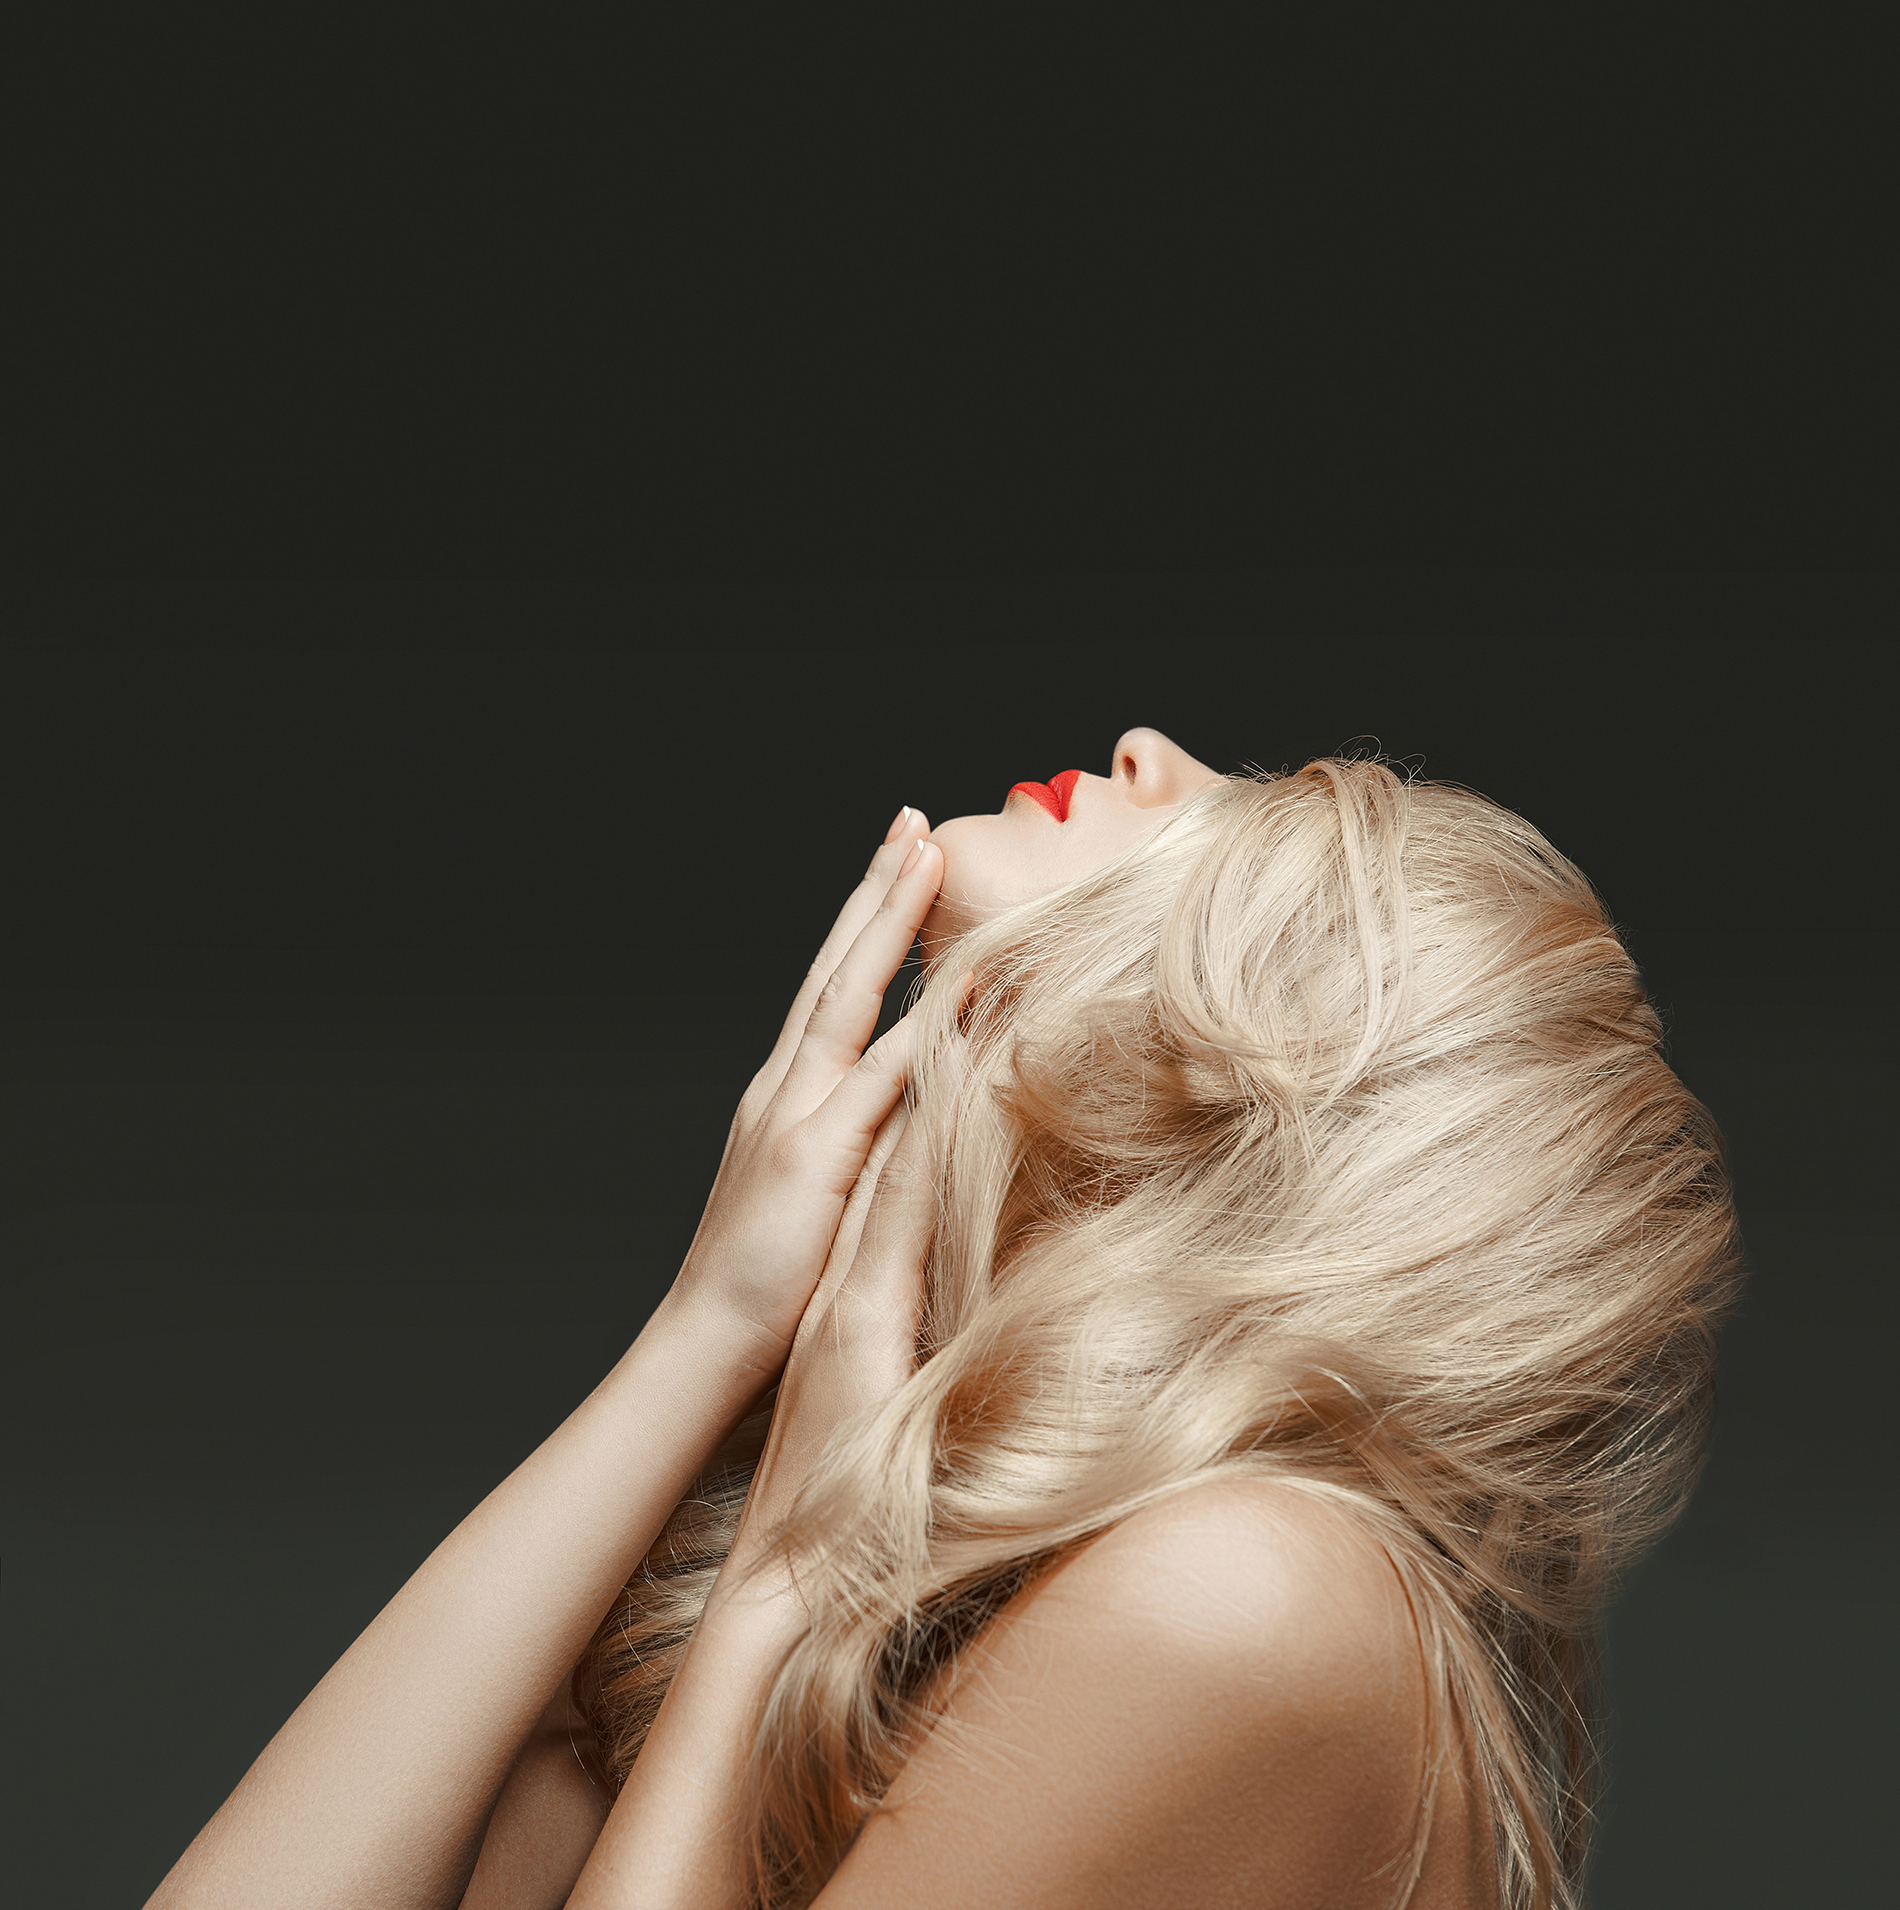 Head back blond hair, red lips beauty 52976